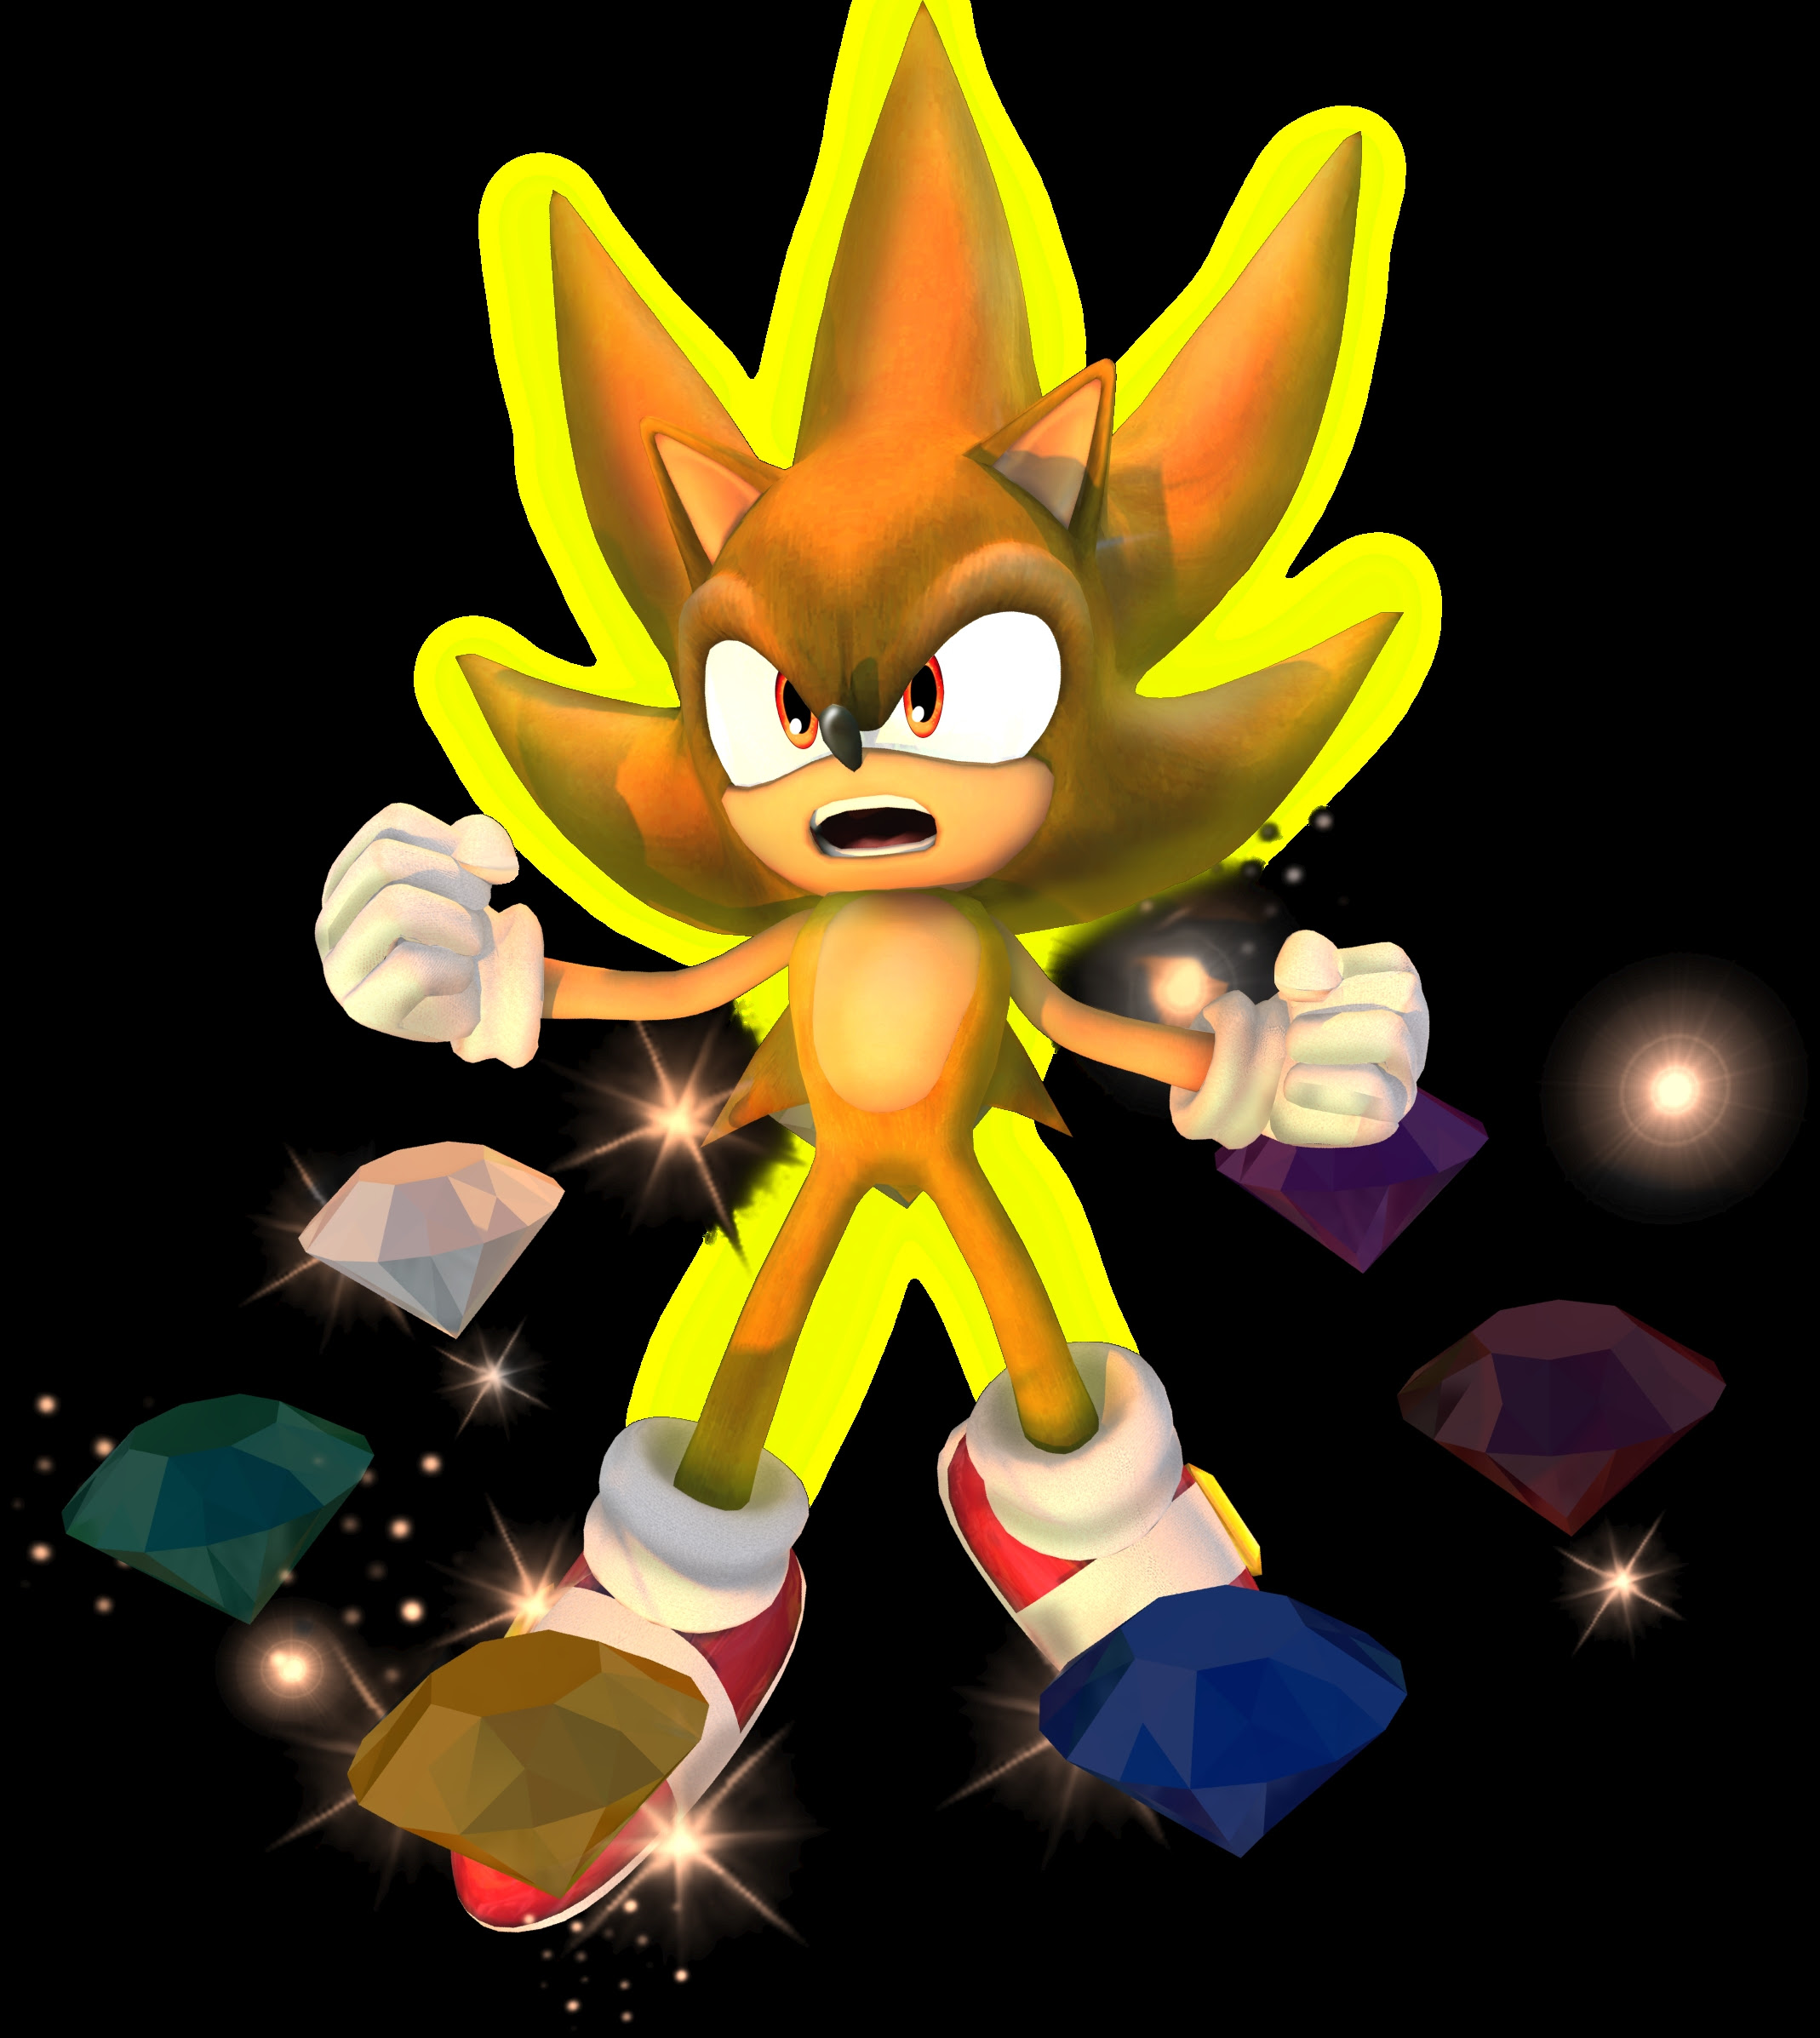 Super Smash Bros Super Smash Bros Brawl Super Sonic 2138x2394